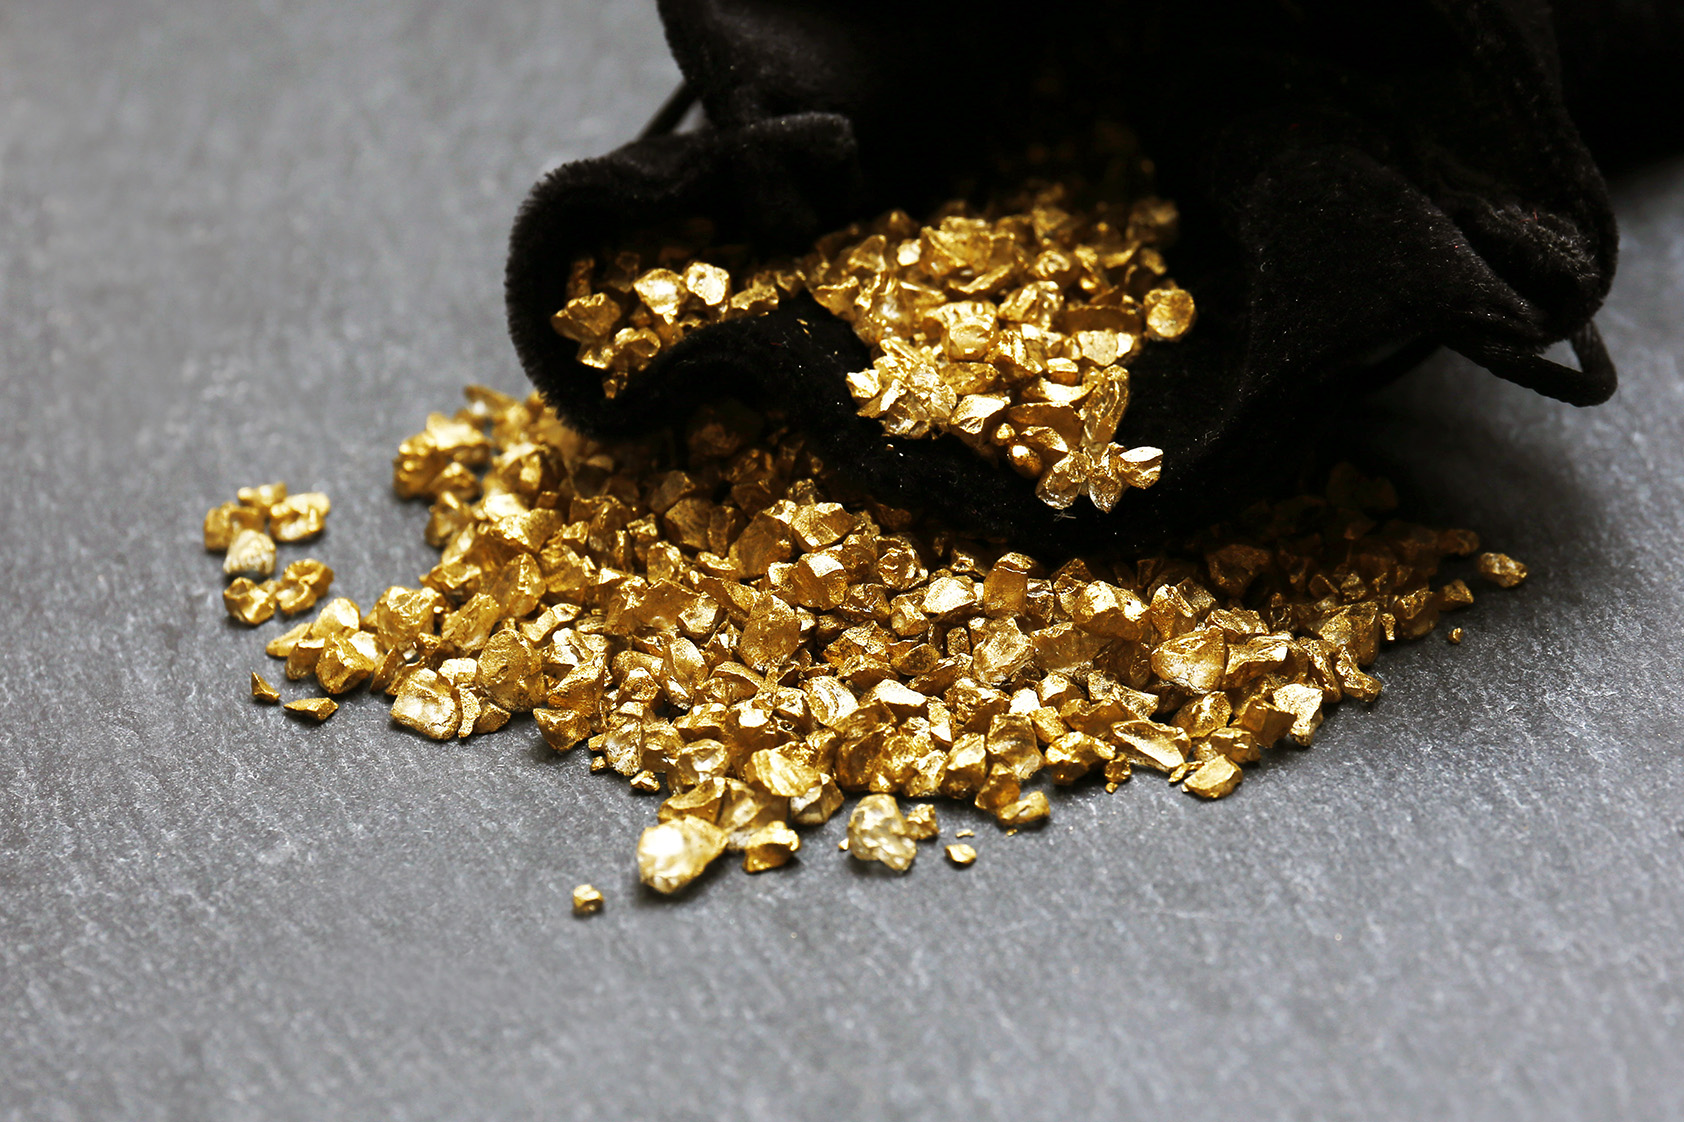 4 Canadian Gold Stocks With The Best Price Volume Momentum